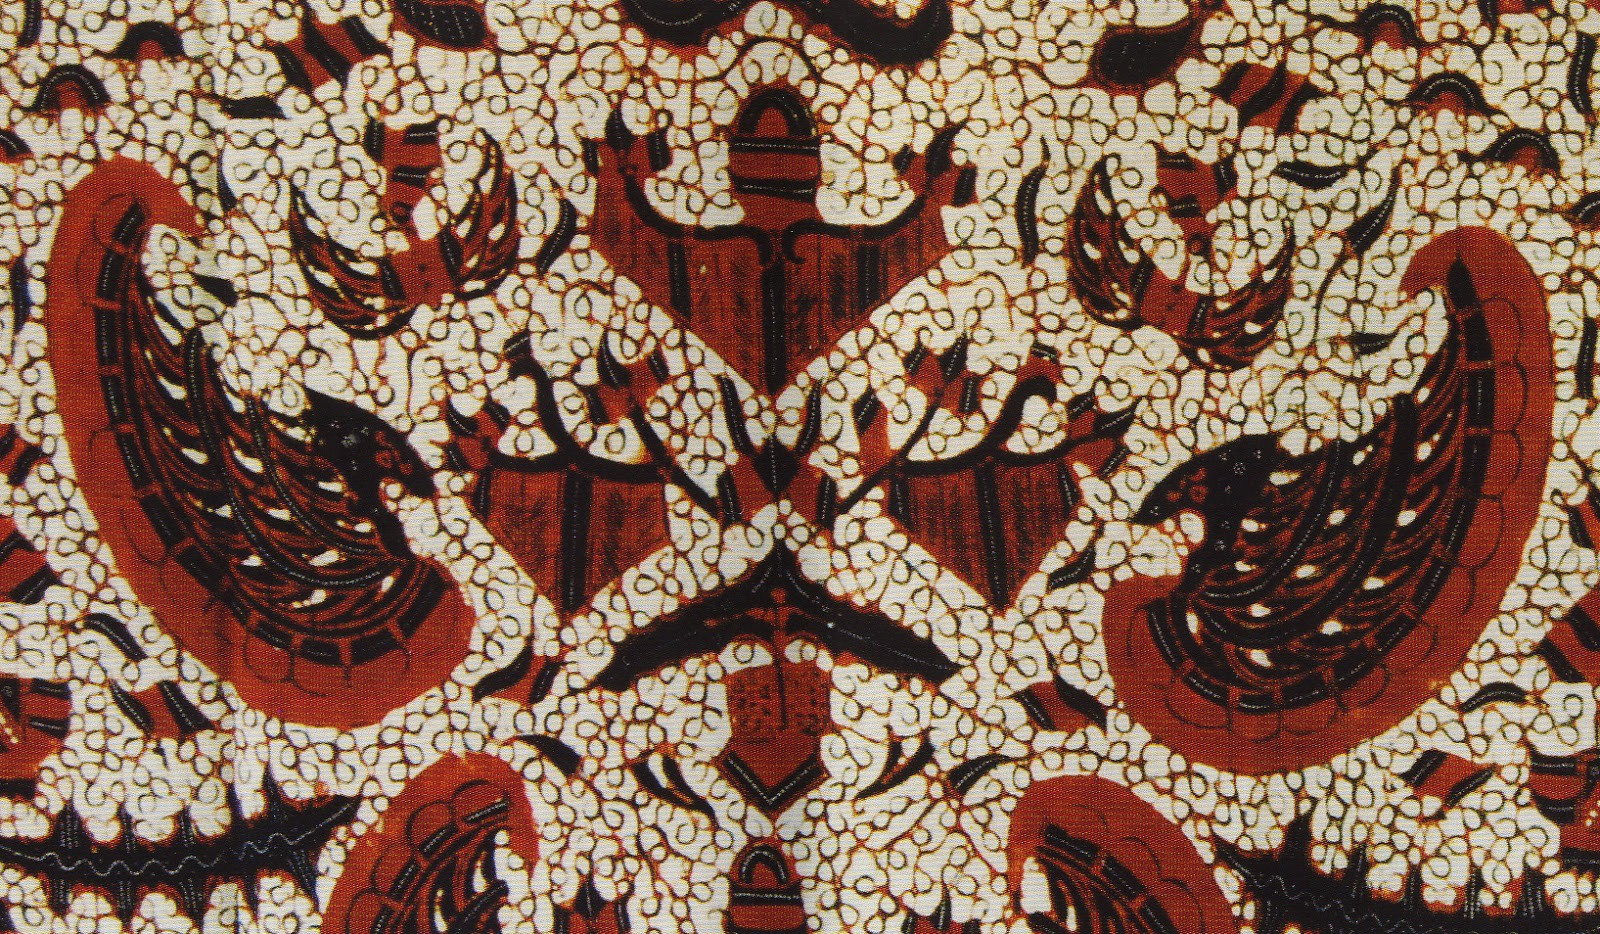 50 Meaning of Behind the Traditional Indonesian Batik